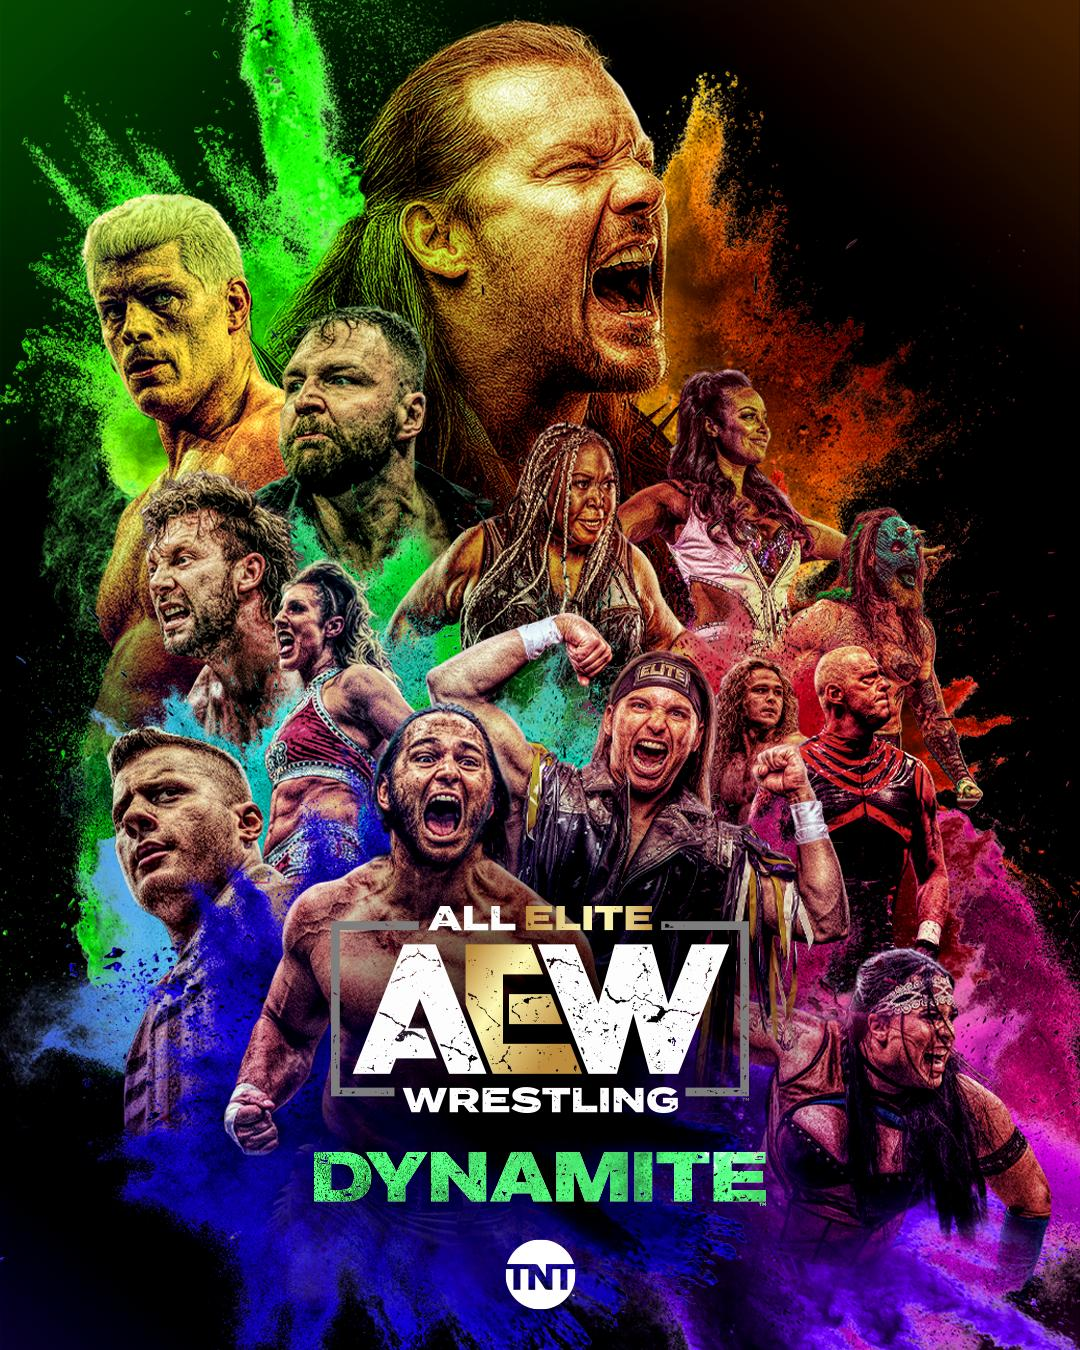 All Elite Wrestling: Dynamite Season 3 Episode 1 - AEW Dynamite 67 - New Year's Smash 2021 Night 1